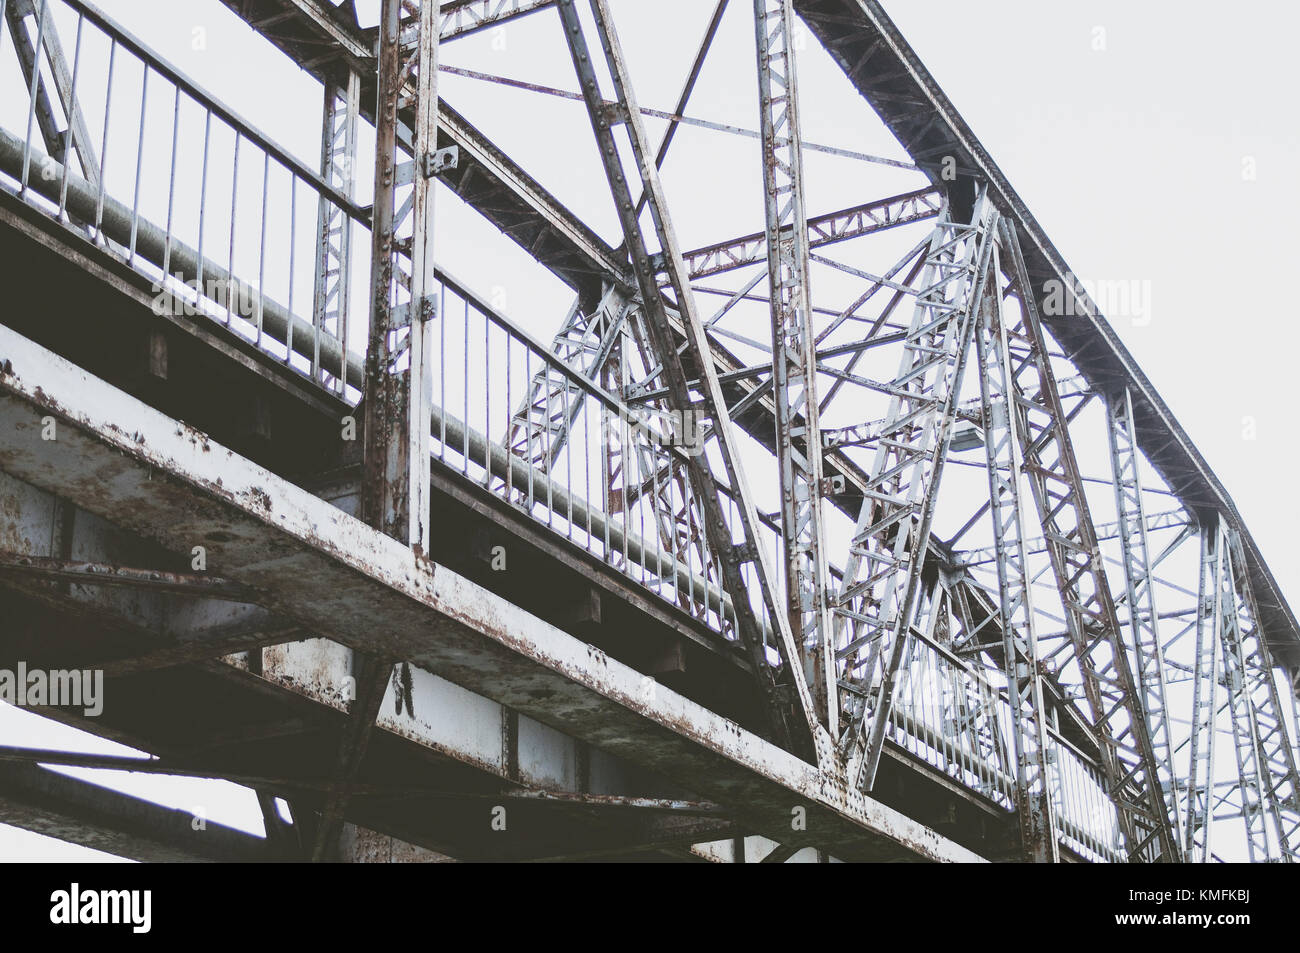 Railway bridge constructions from the bottom. Stock Photo